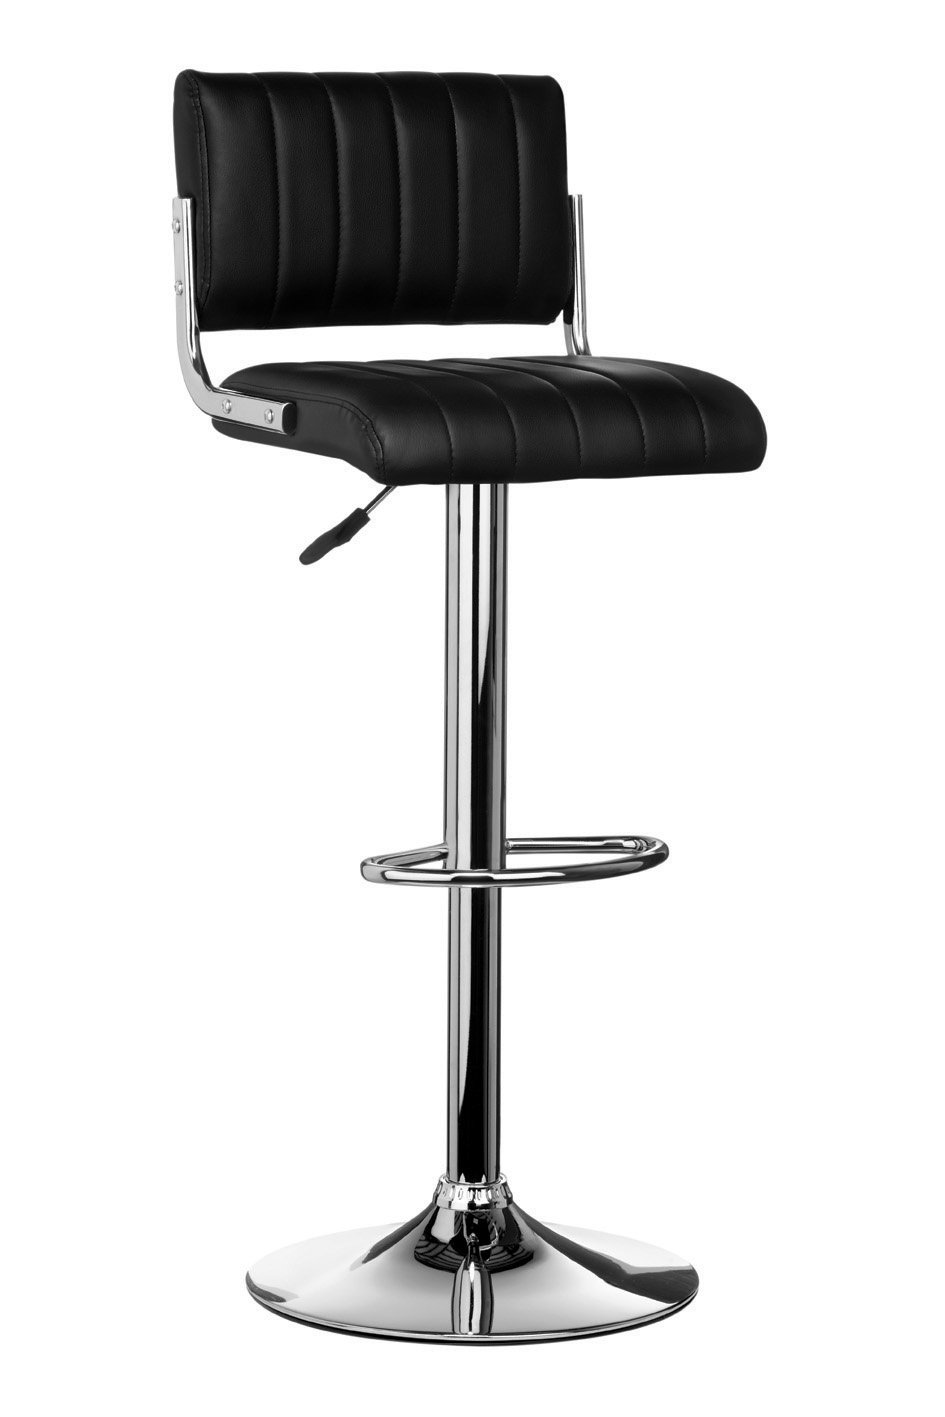 Premier Housewares Ribbed Bar Chair - Black, Set of 2 8881110